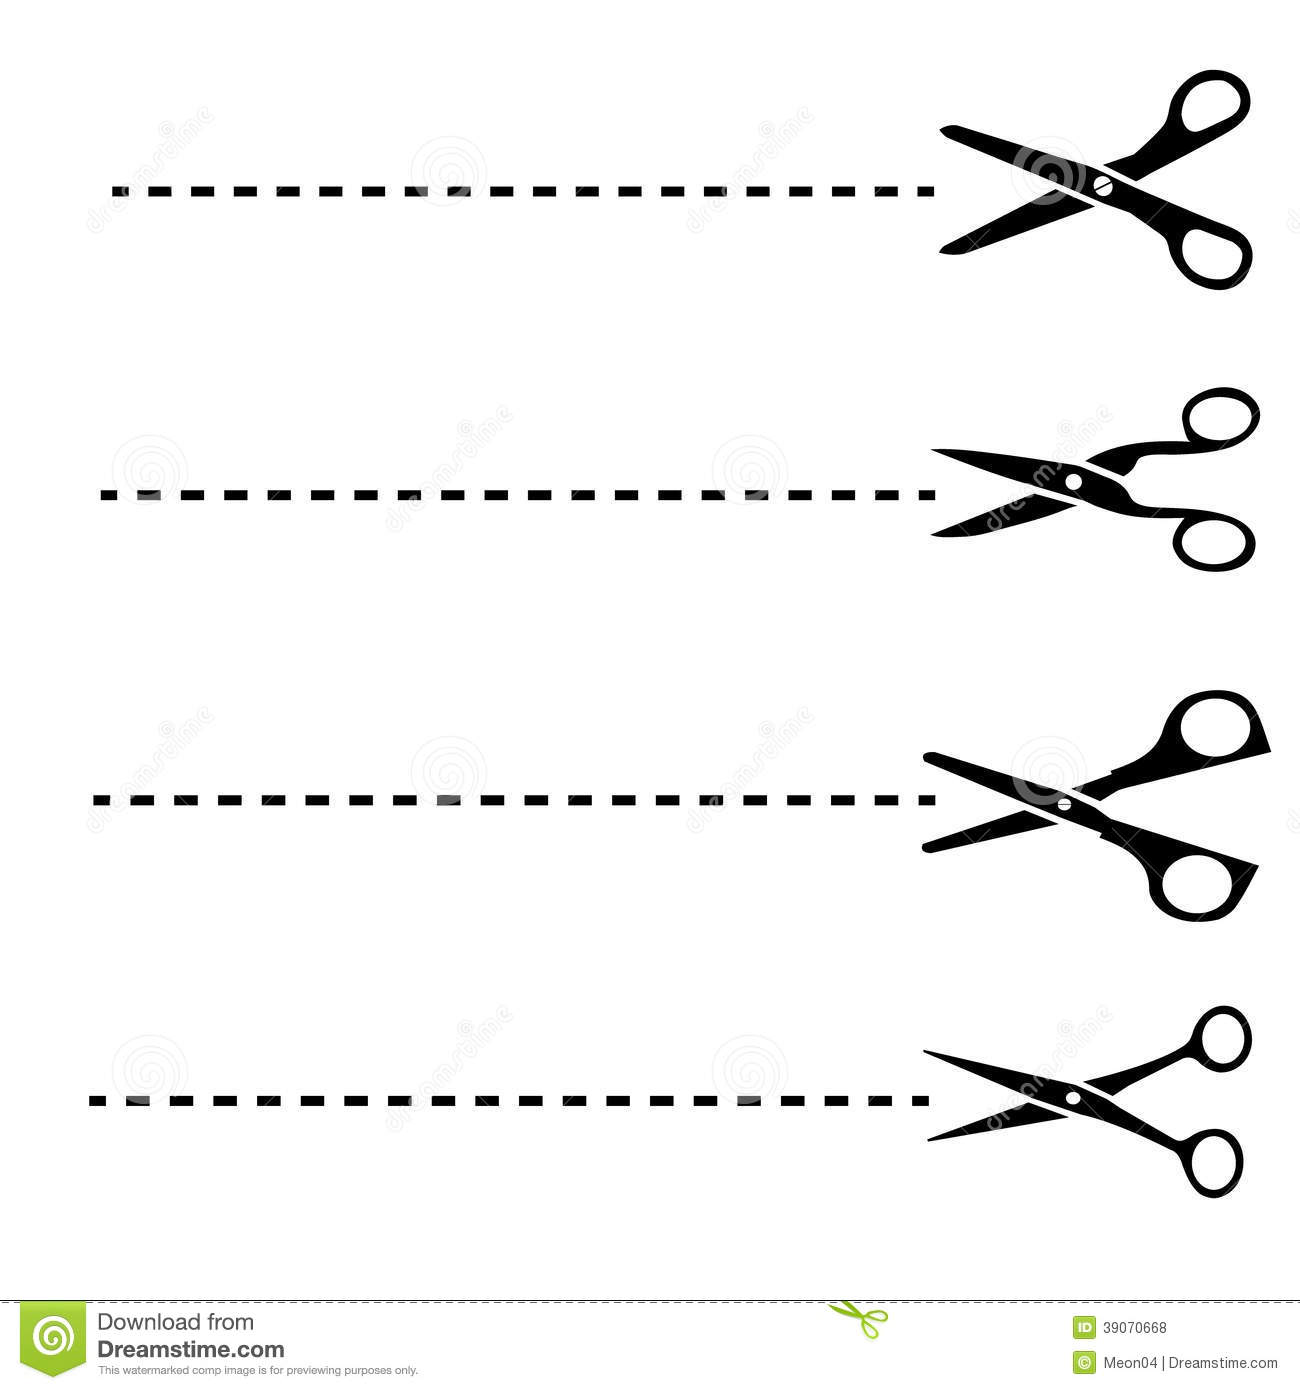 Vector Drawing Lines Worksheets : Scissors with cut lines stock vector illustration of